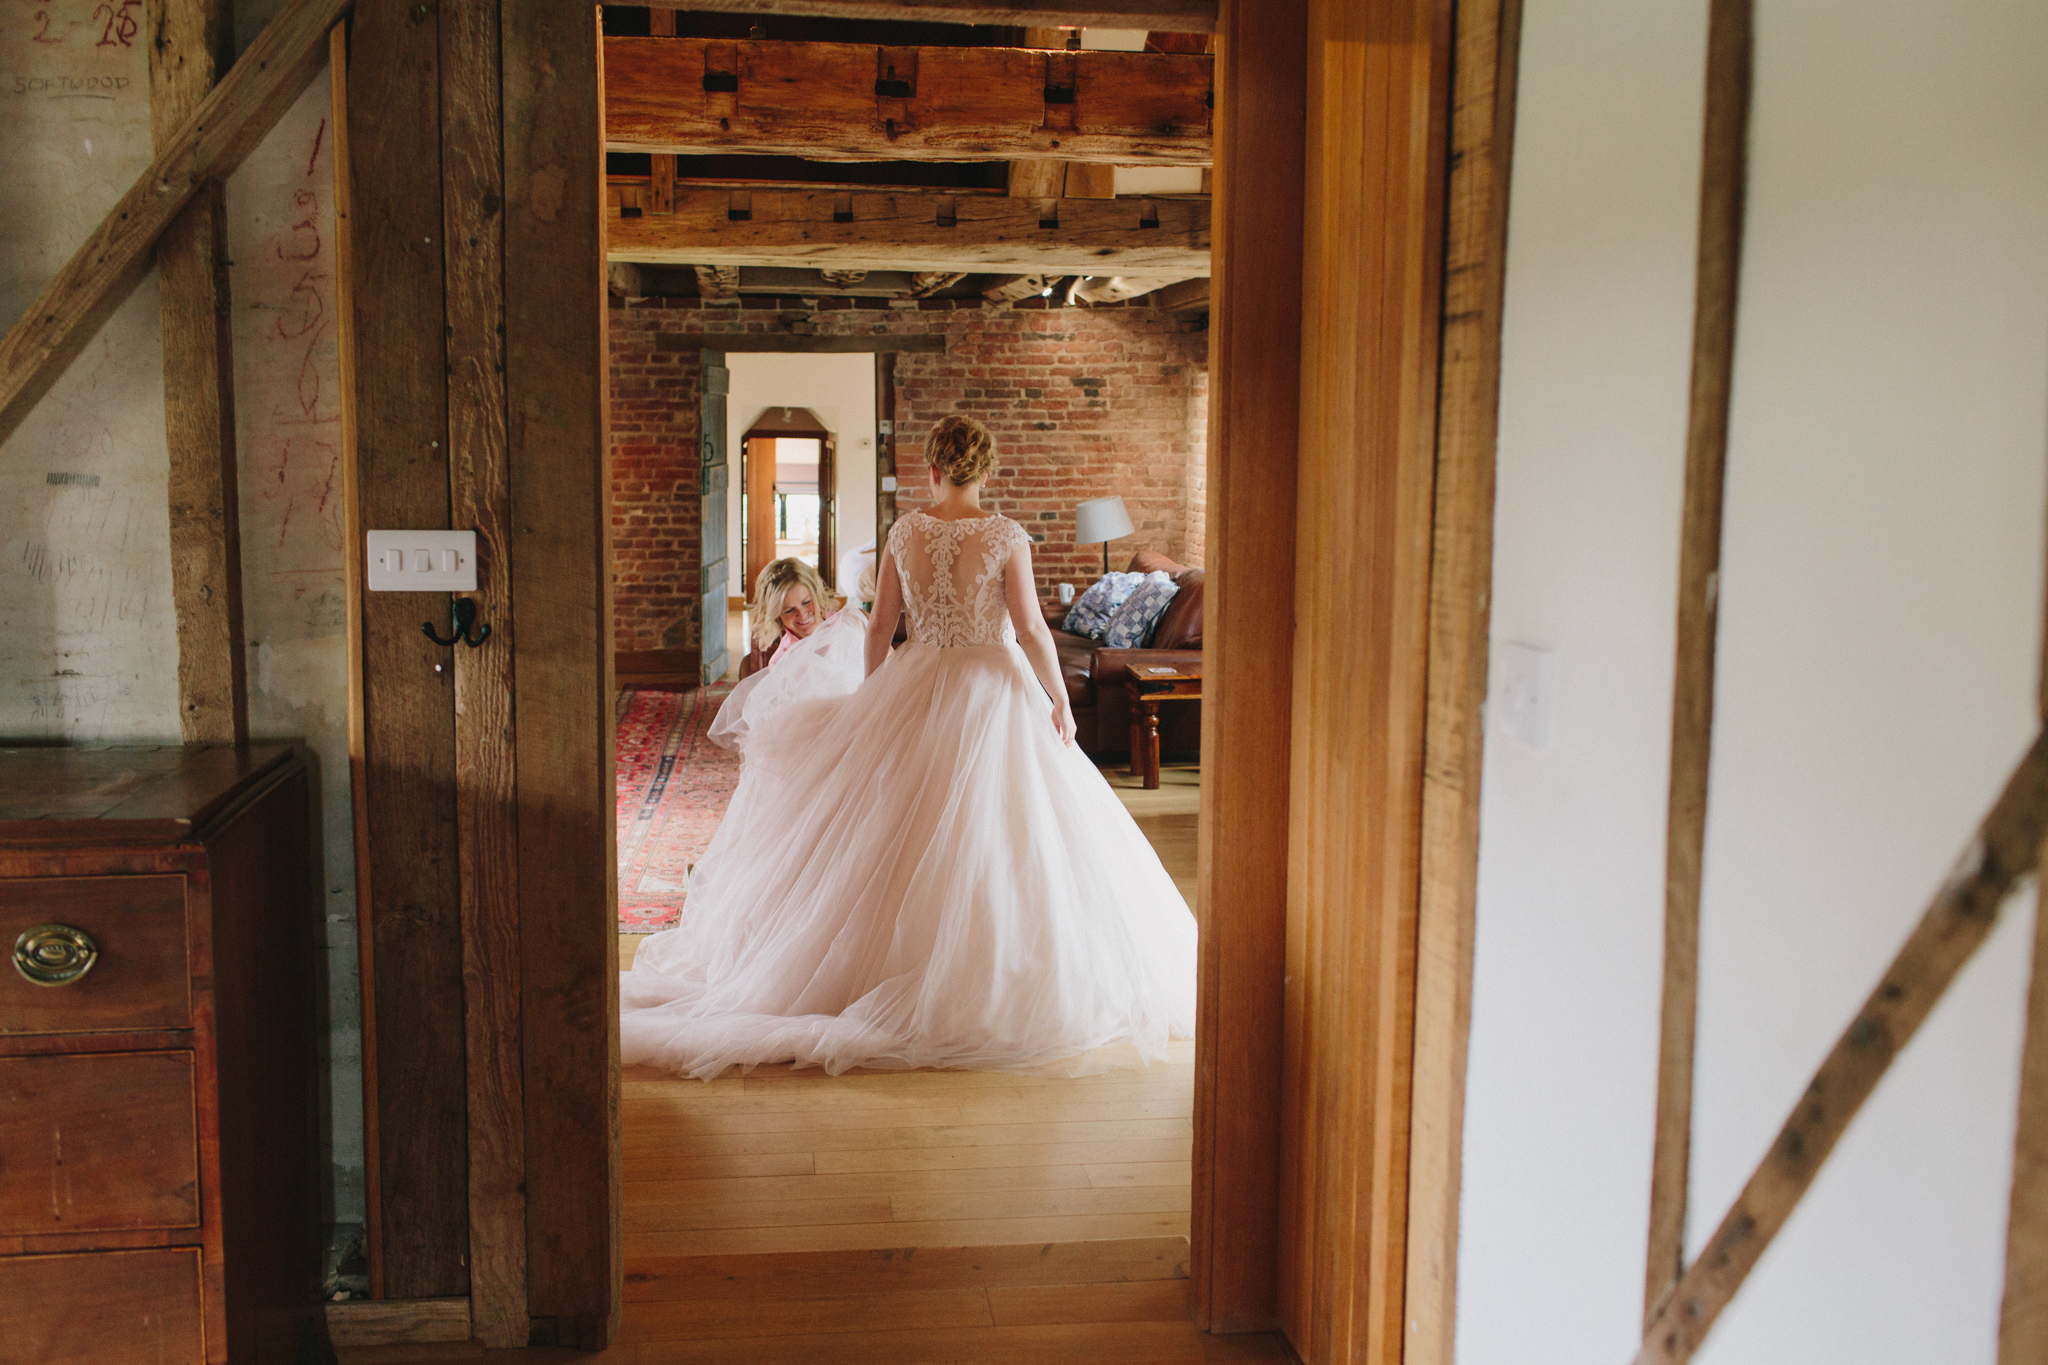 full day coverage wedding photographer in sussex